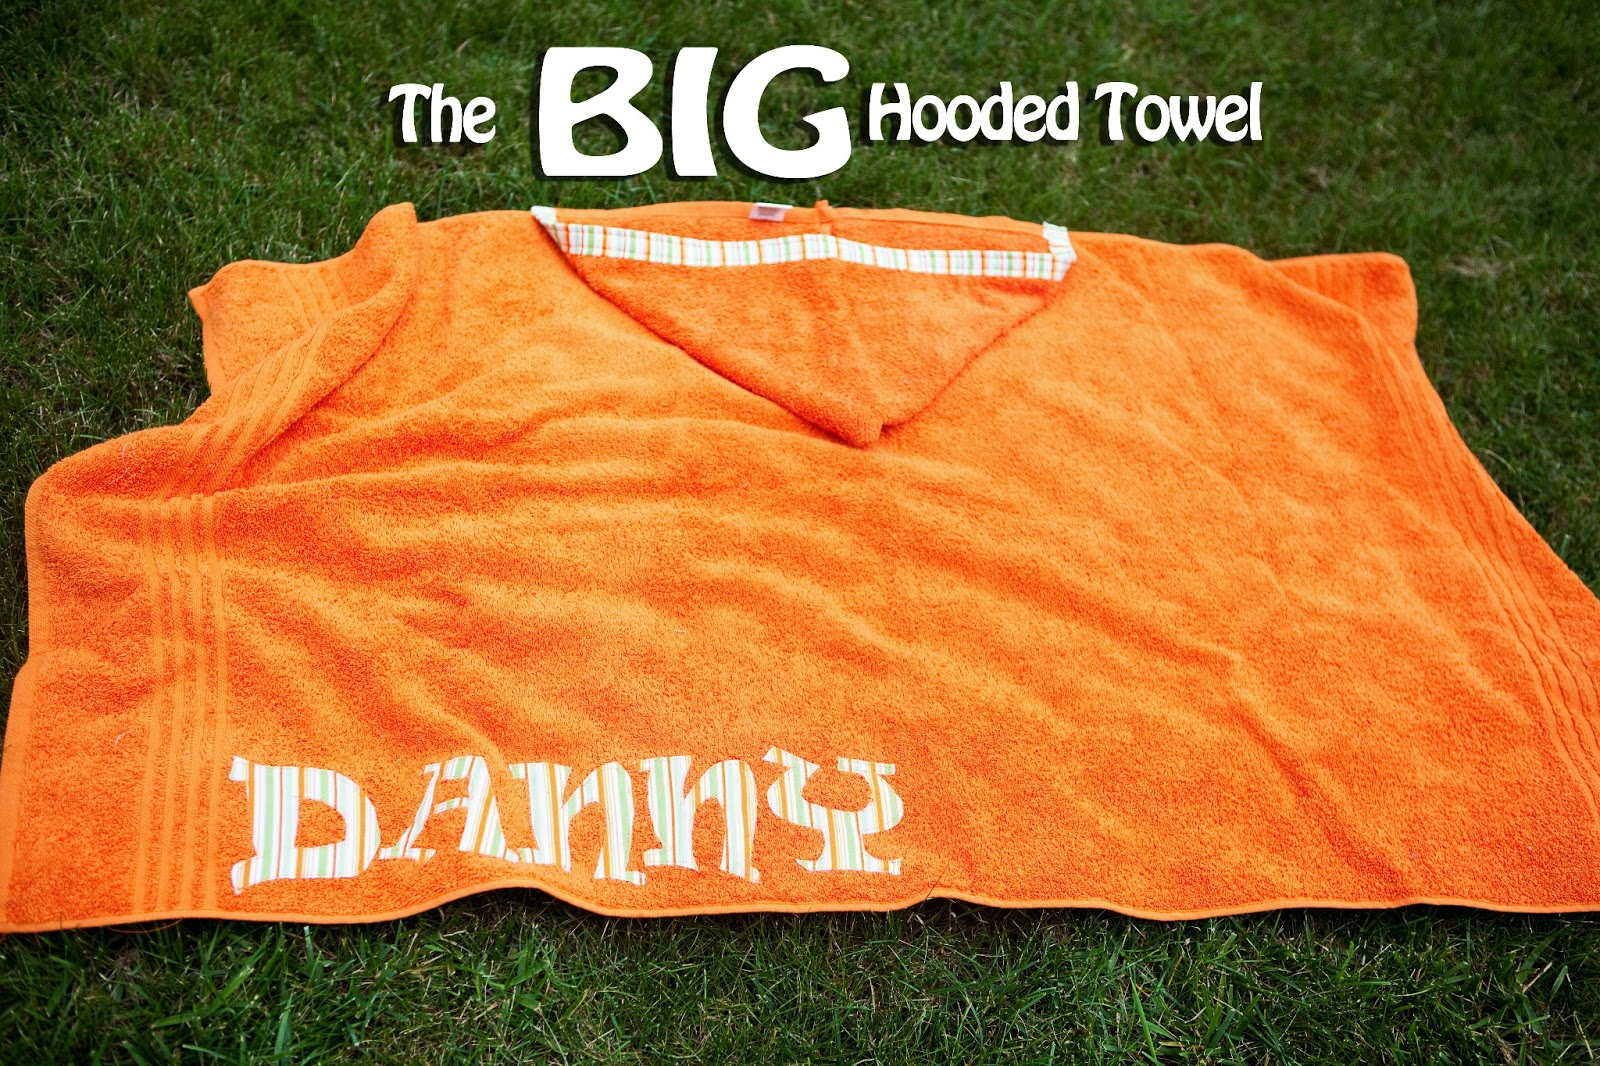 Big W Round Towel The Big Hooded Towel Tutorial Welcometothemousehouse